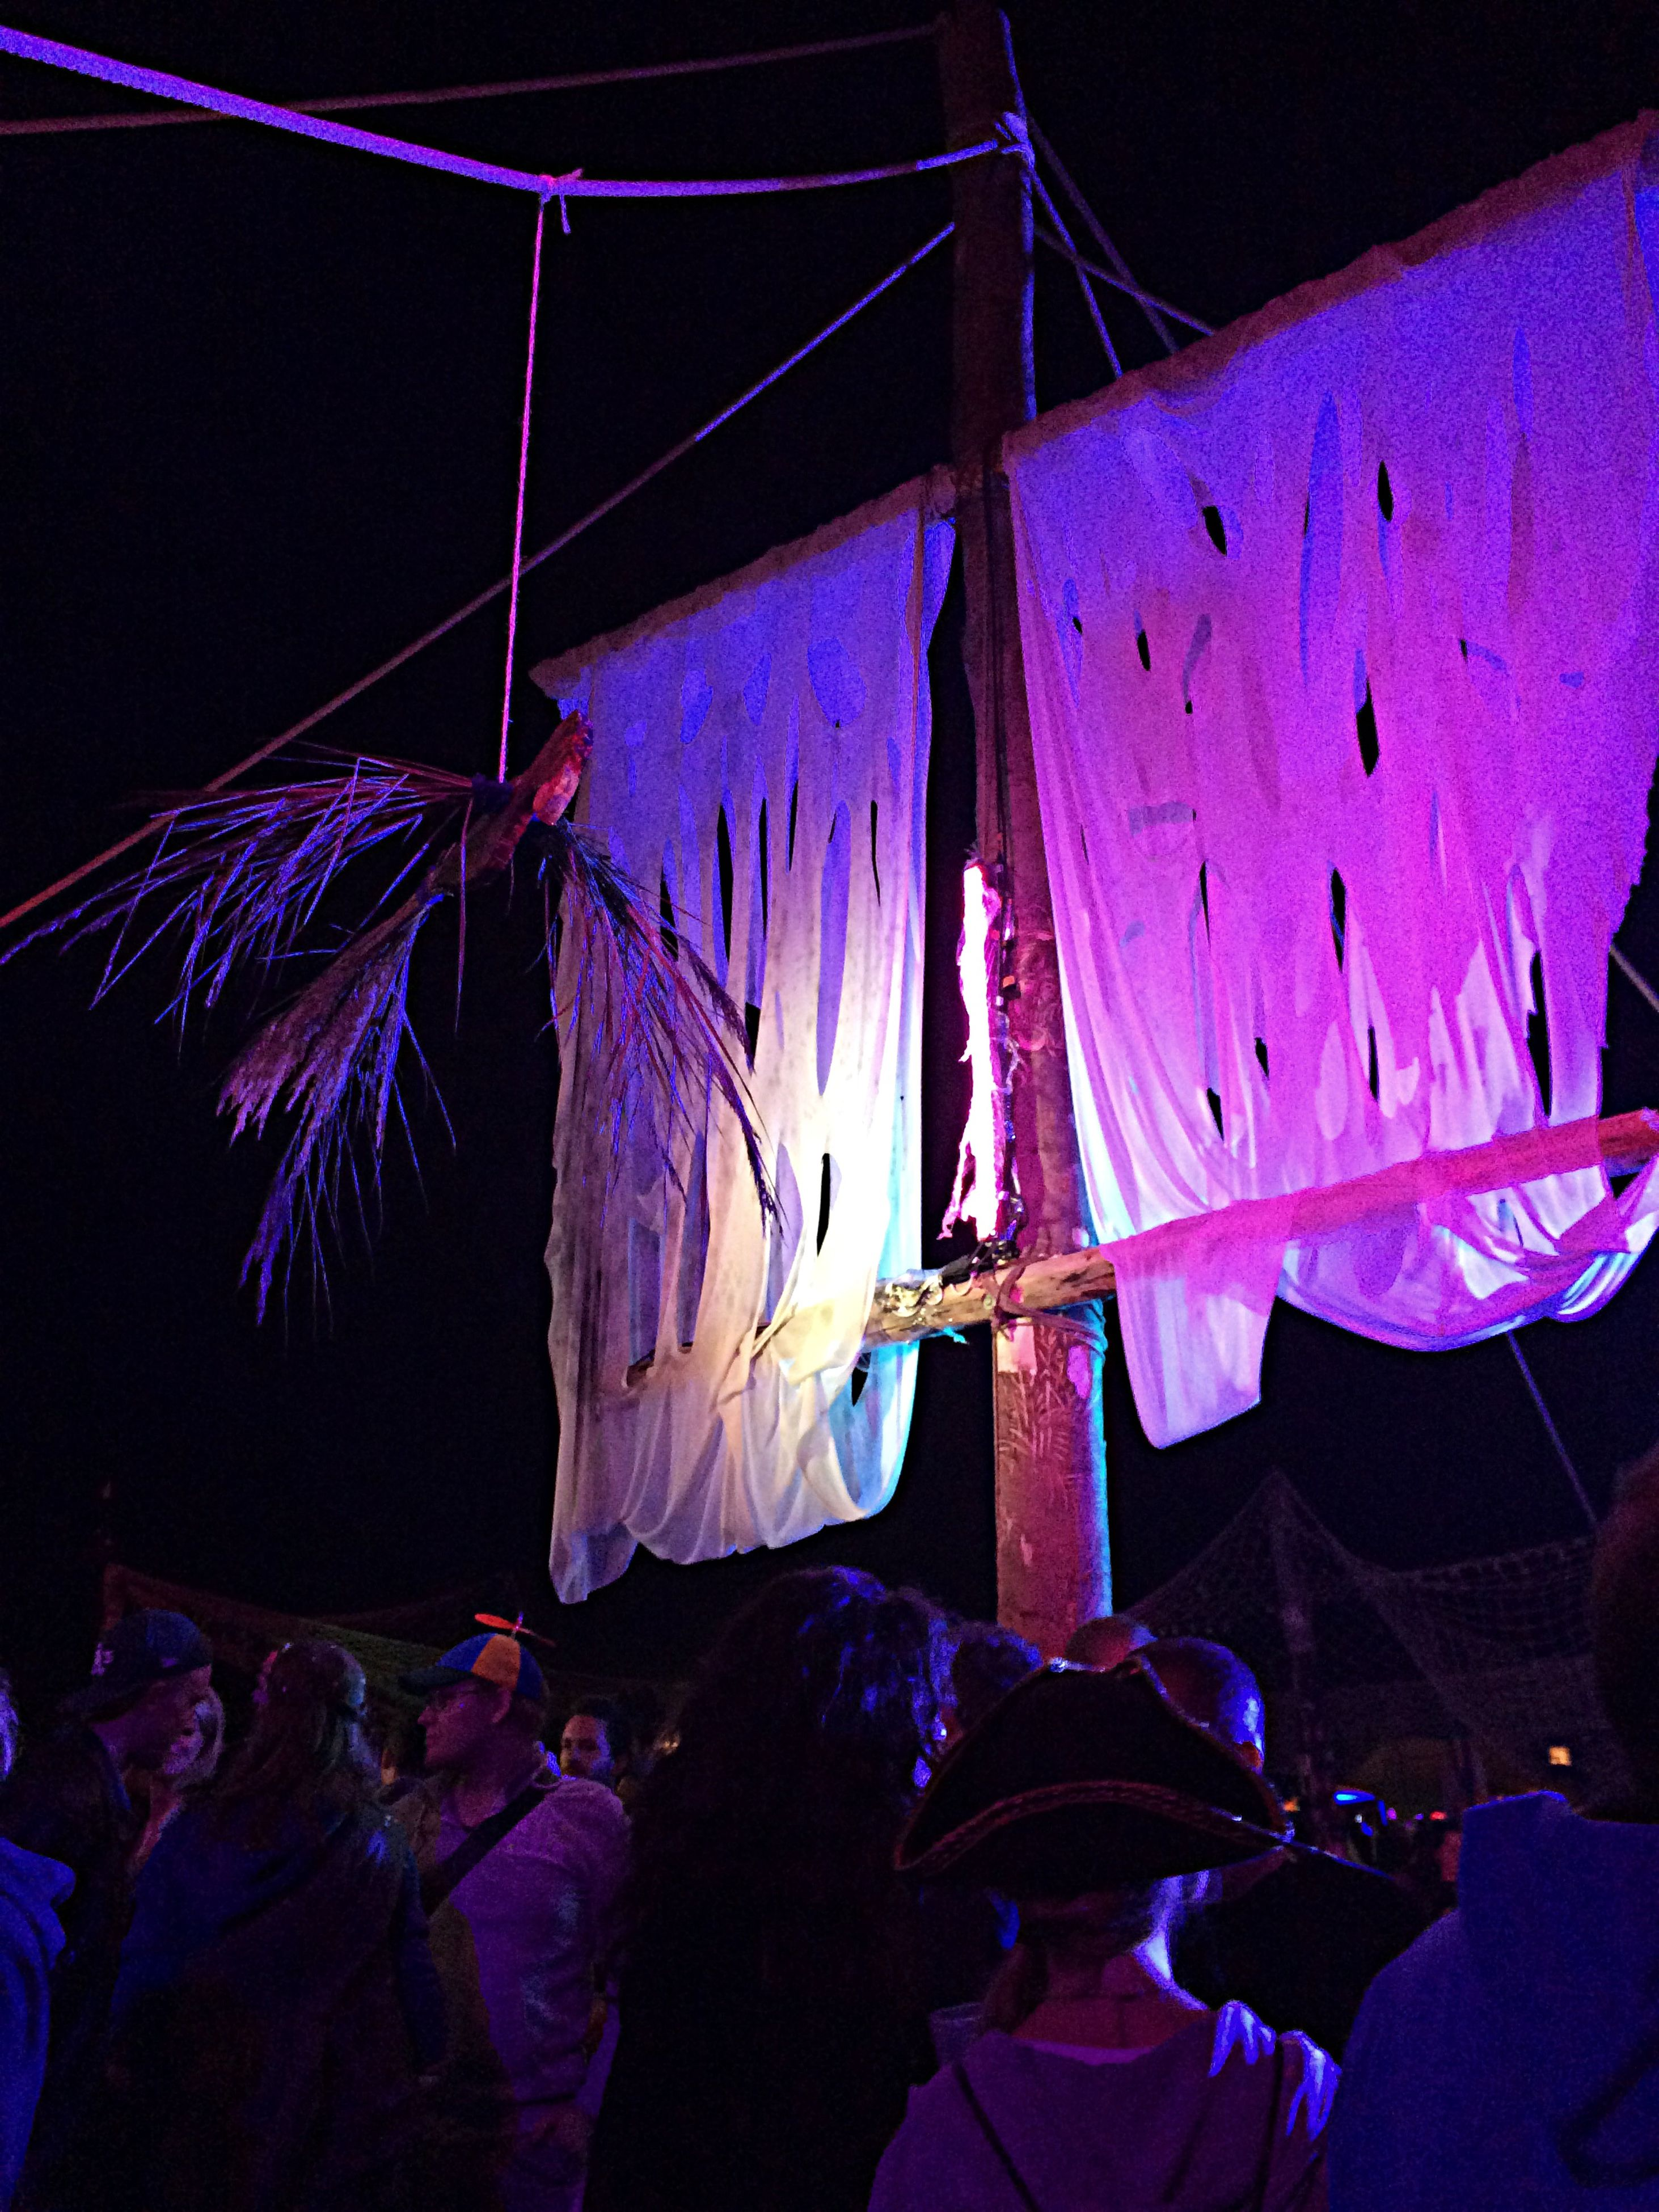 arts culture and entertainment, night, multi colored, low angle view, illuminated, blue, outdoors, purple, umbrella, colorful, creativity, no people, sky, hanging, graffiti, rope, built structure, art and craft